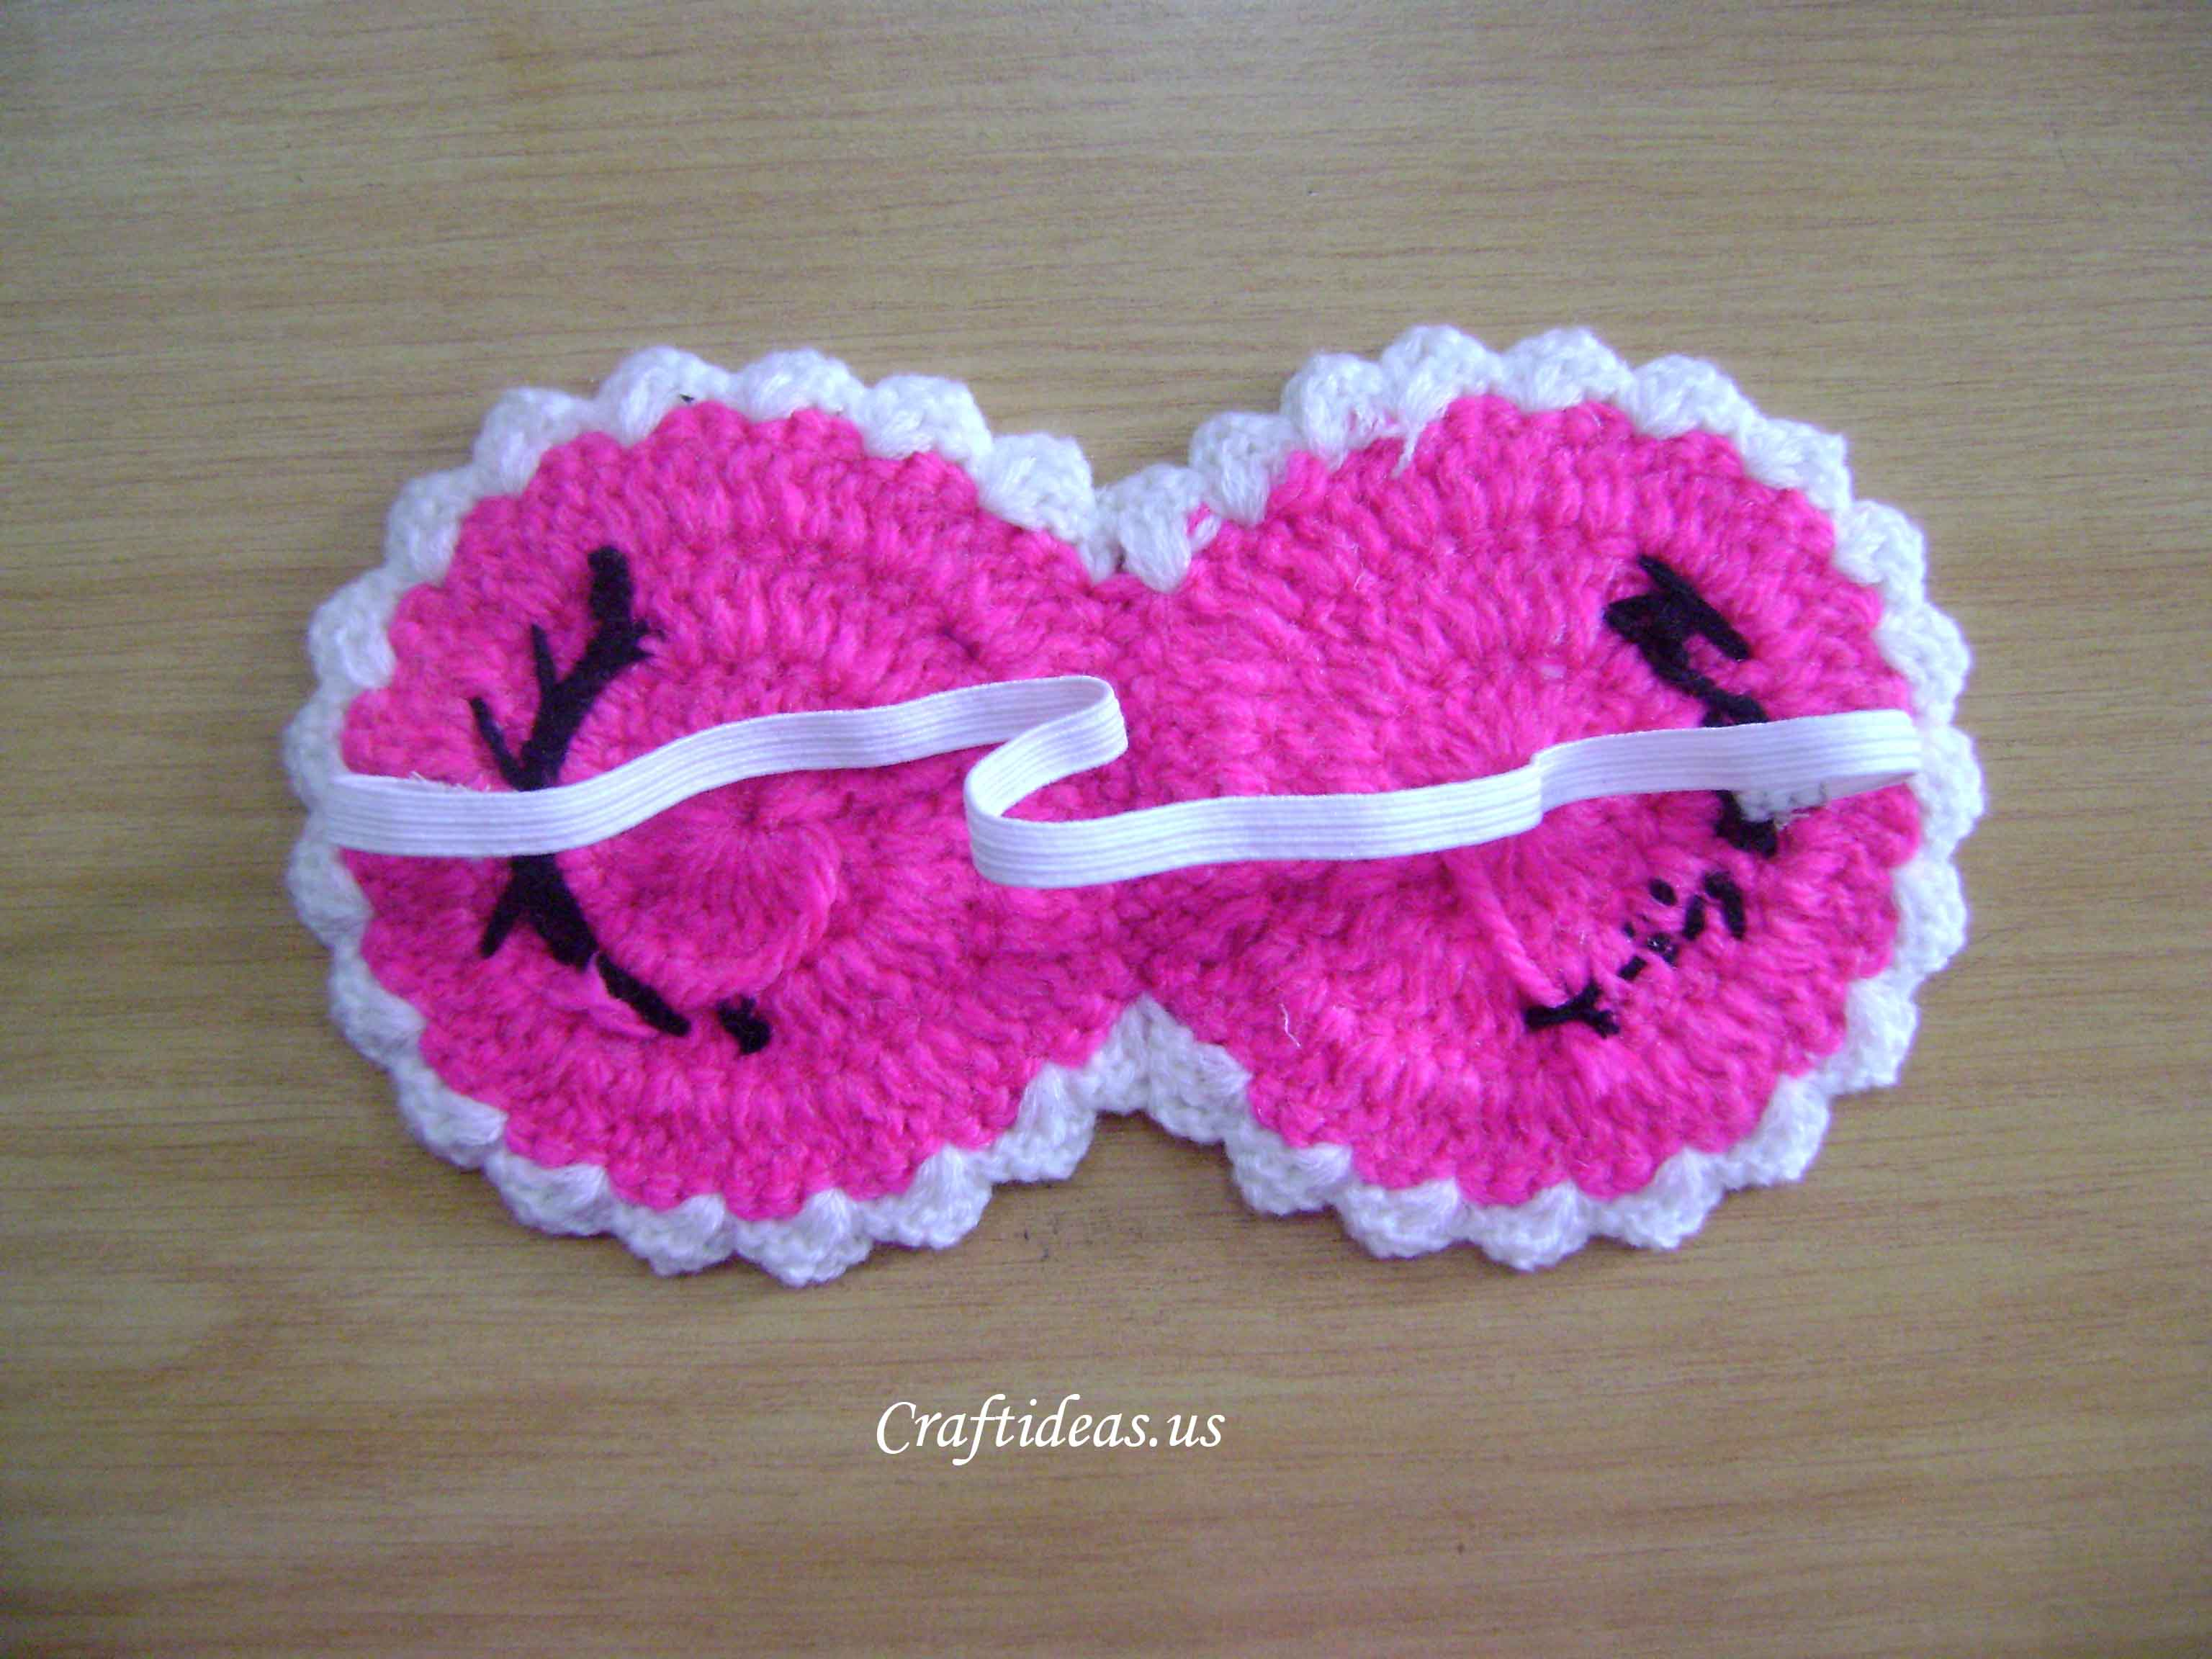 Crocheting Gifts Ideas : Crochet sleeping mask